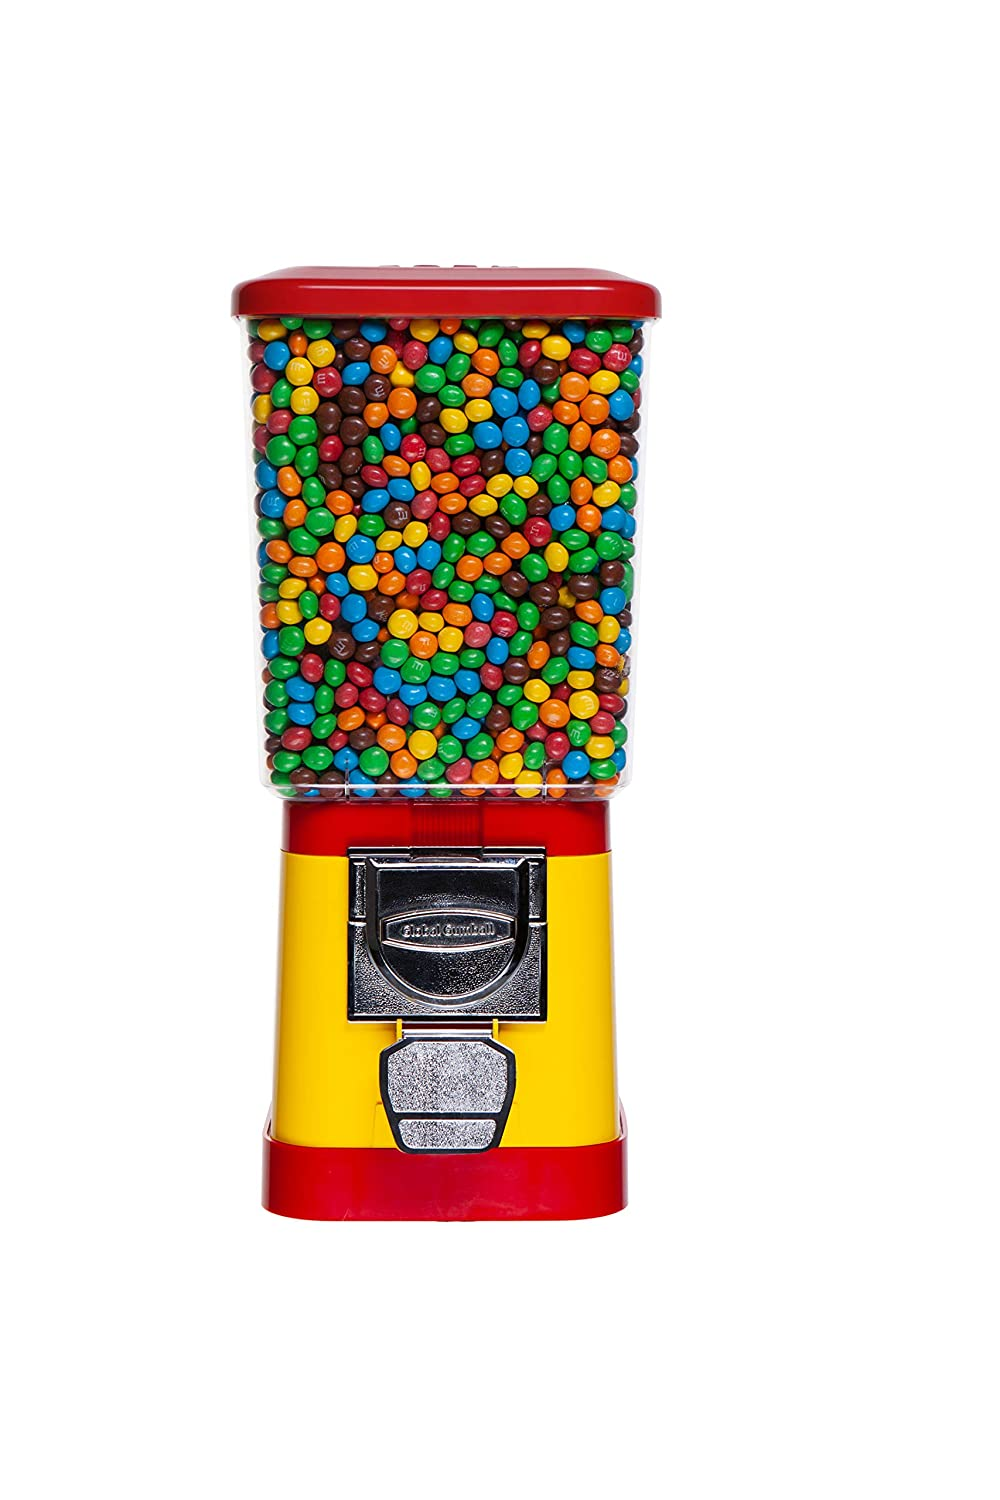 Candy Dispenser - Home Vending Max 62% OFF Red and Machine Yellow Boston Mall Ve